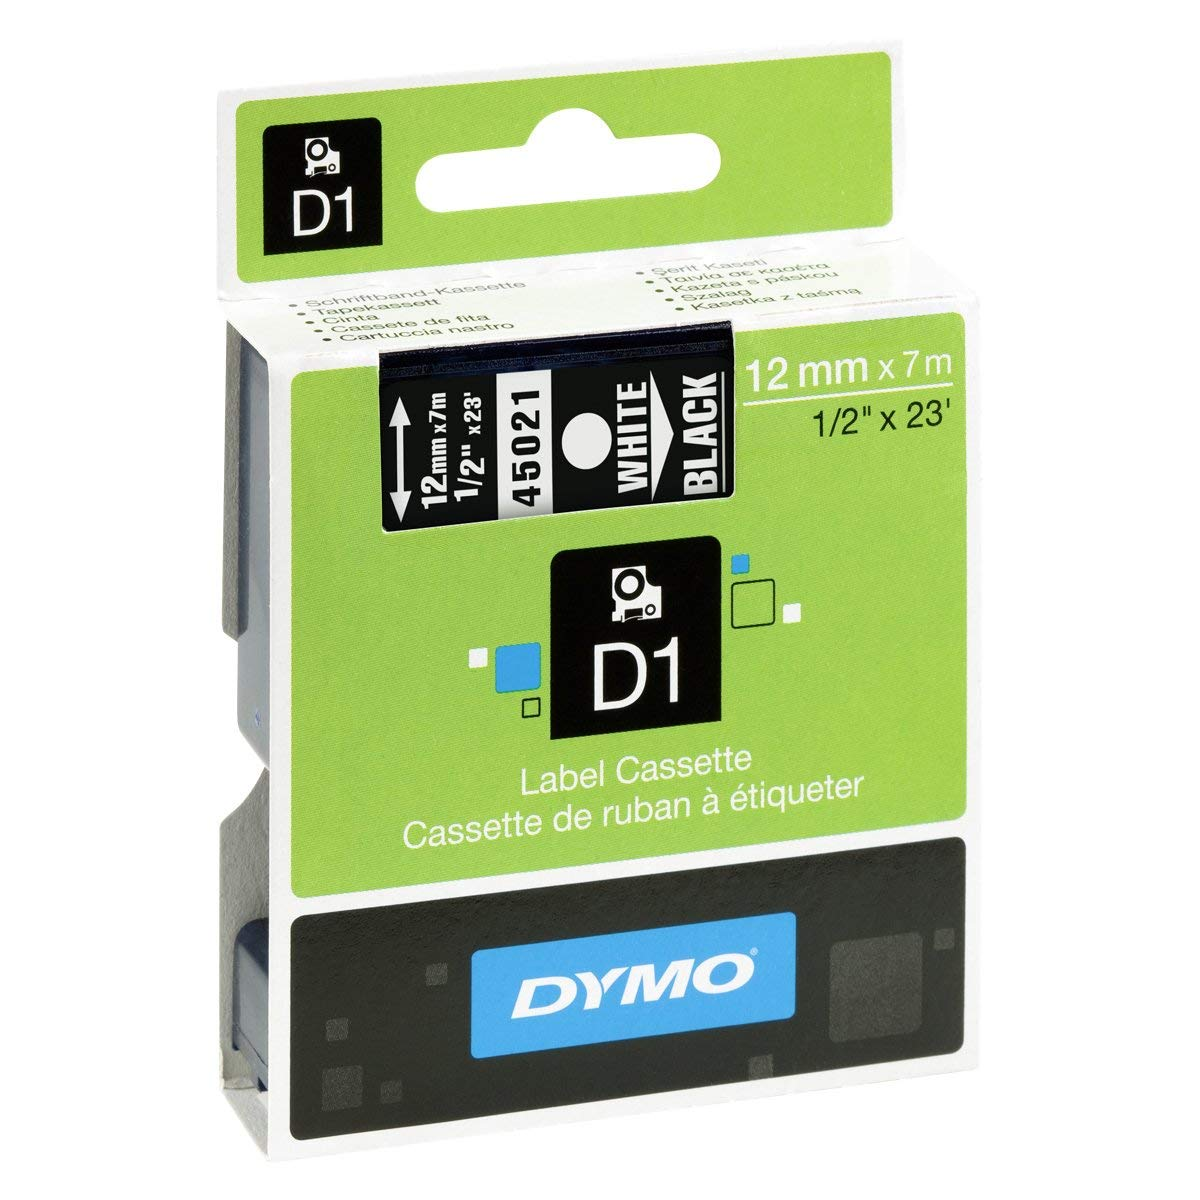 Dymo S0720610 White on Black D1 Label Tape 12 mm x 7 m - White on Black (pc)